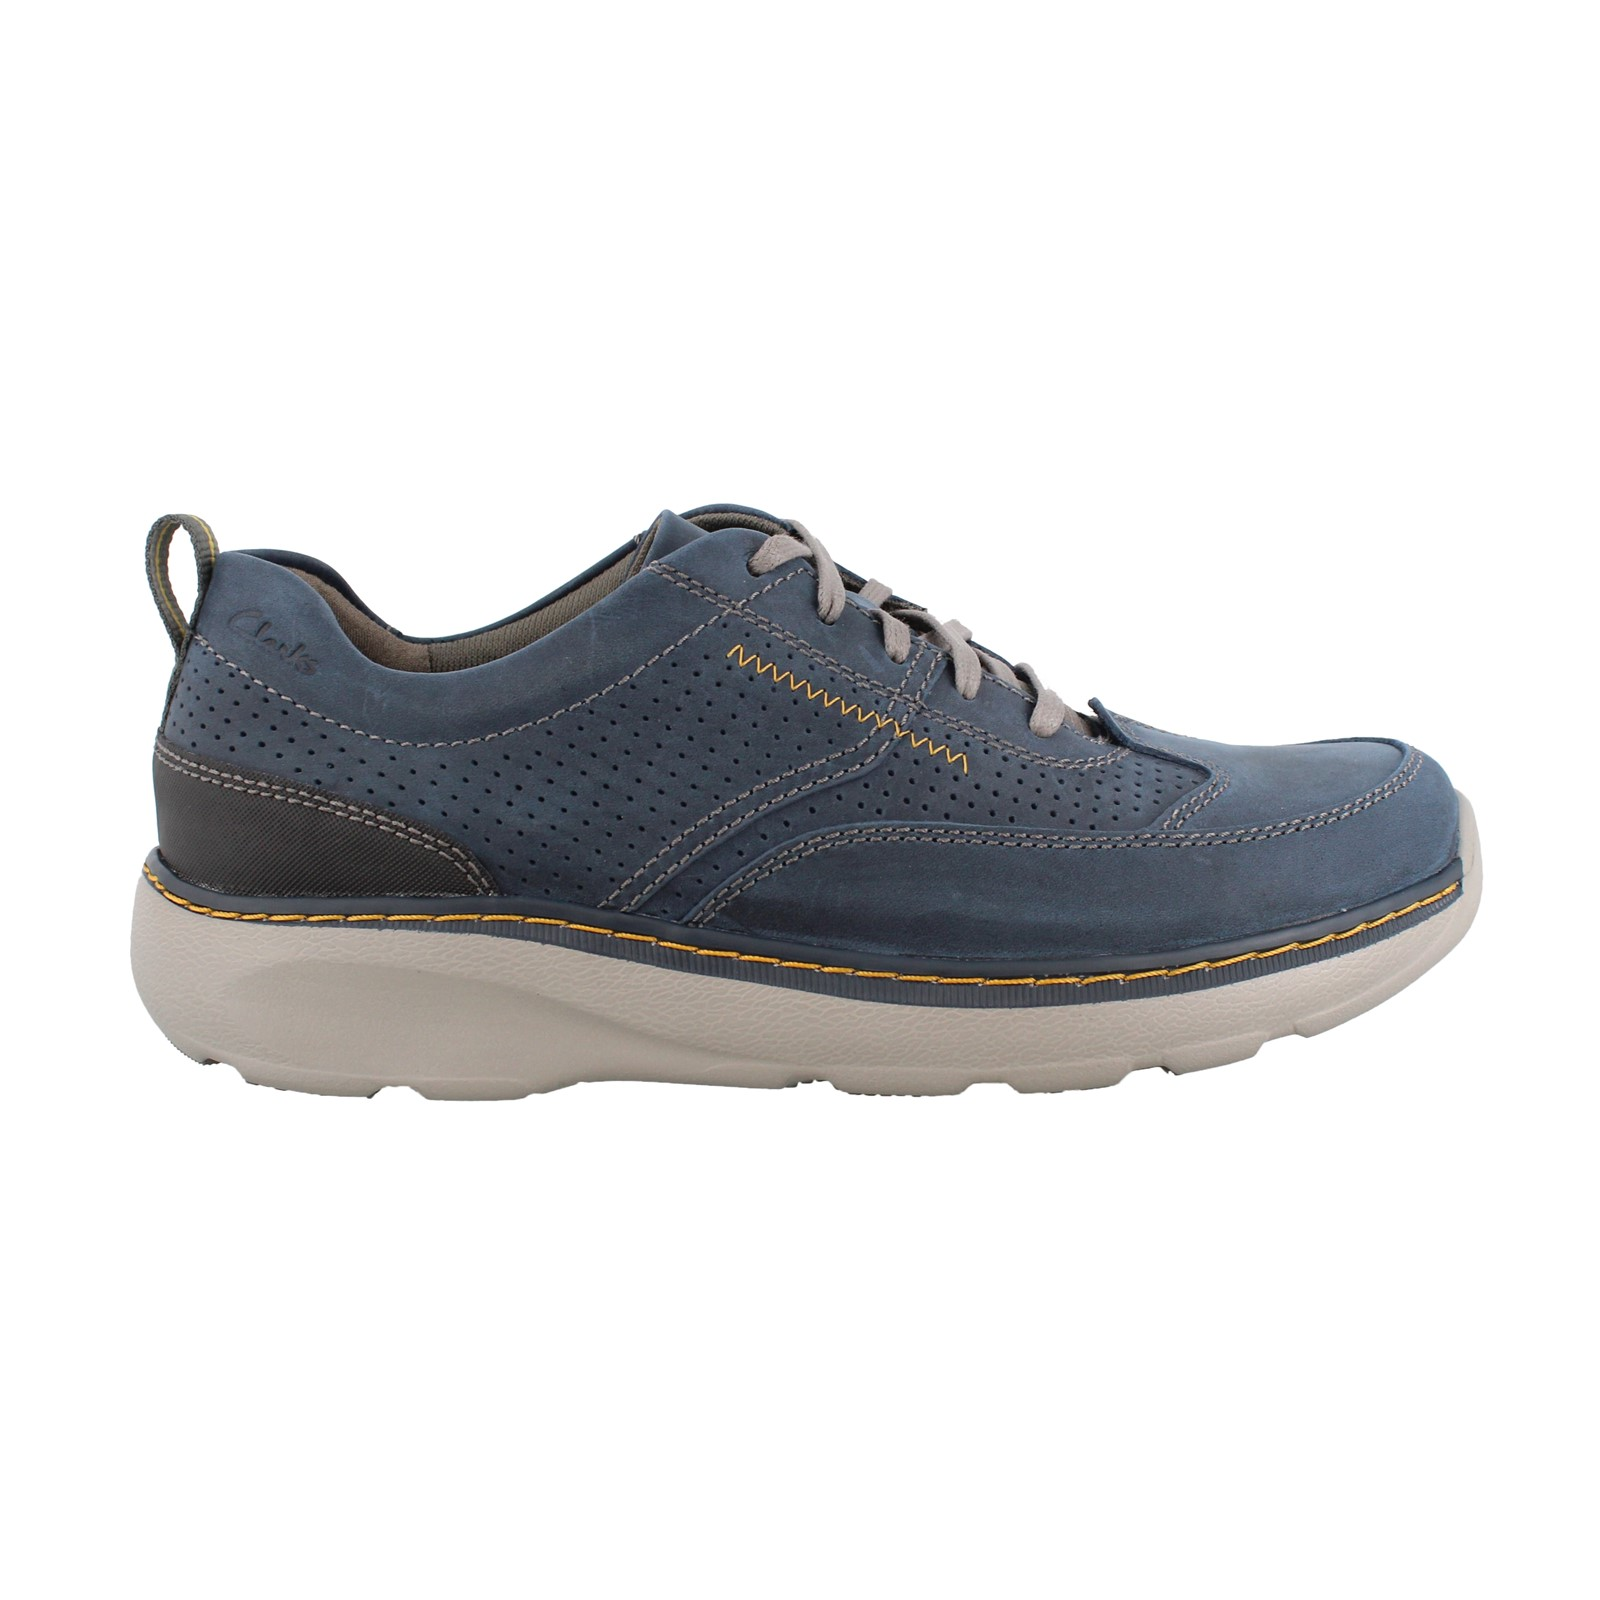 Men's Clarks, Charton Mix Lace up Shoes